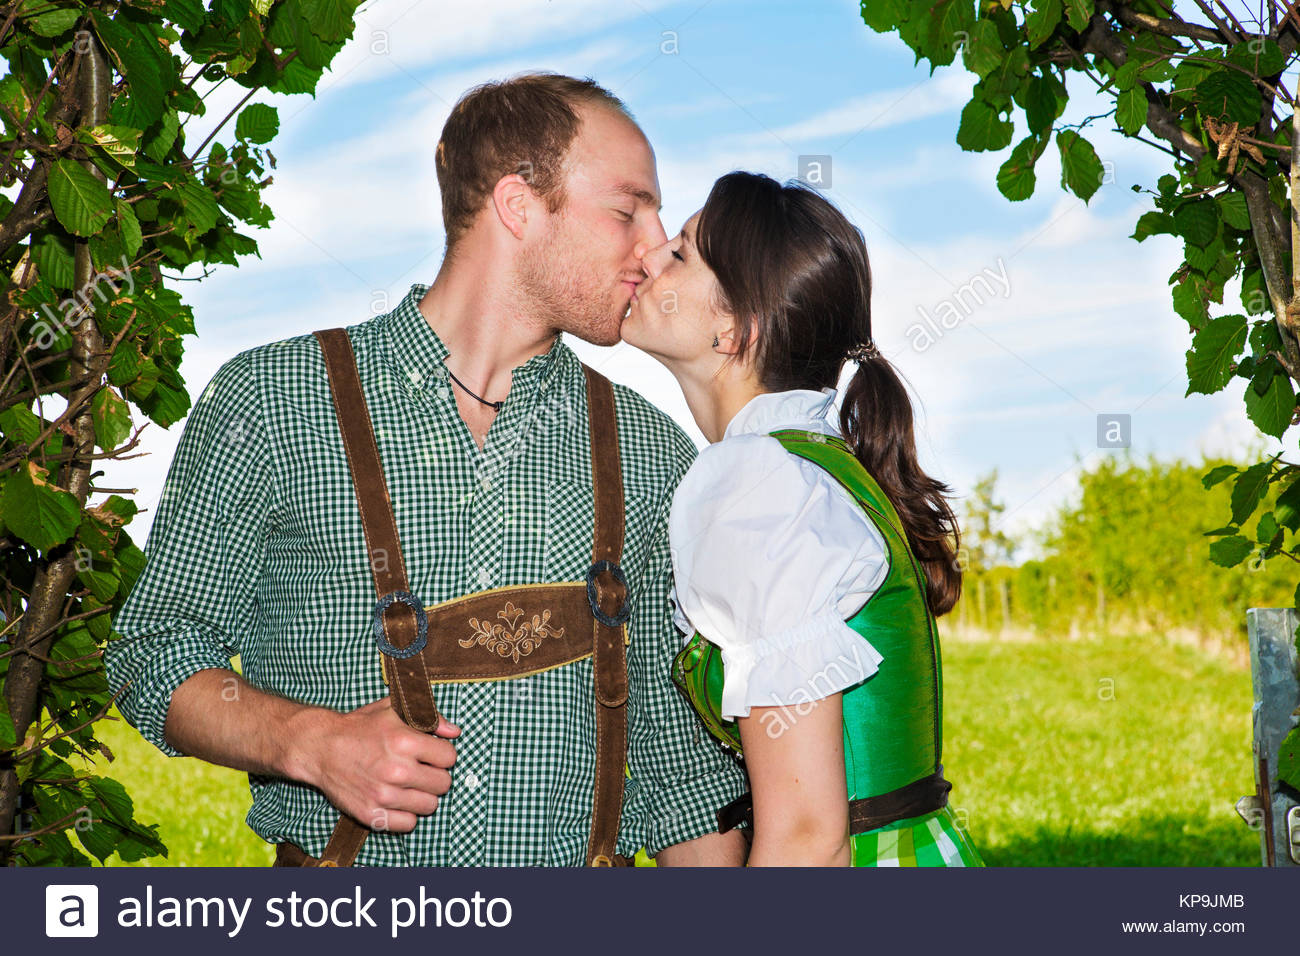 bavarian couple kissing each other - Stock Image